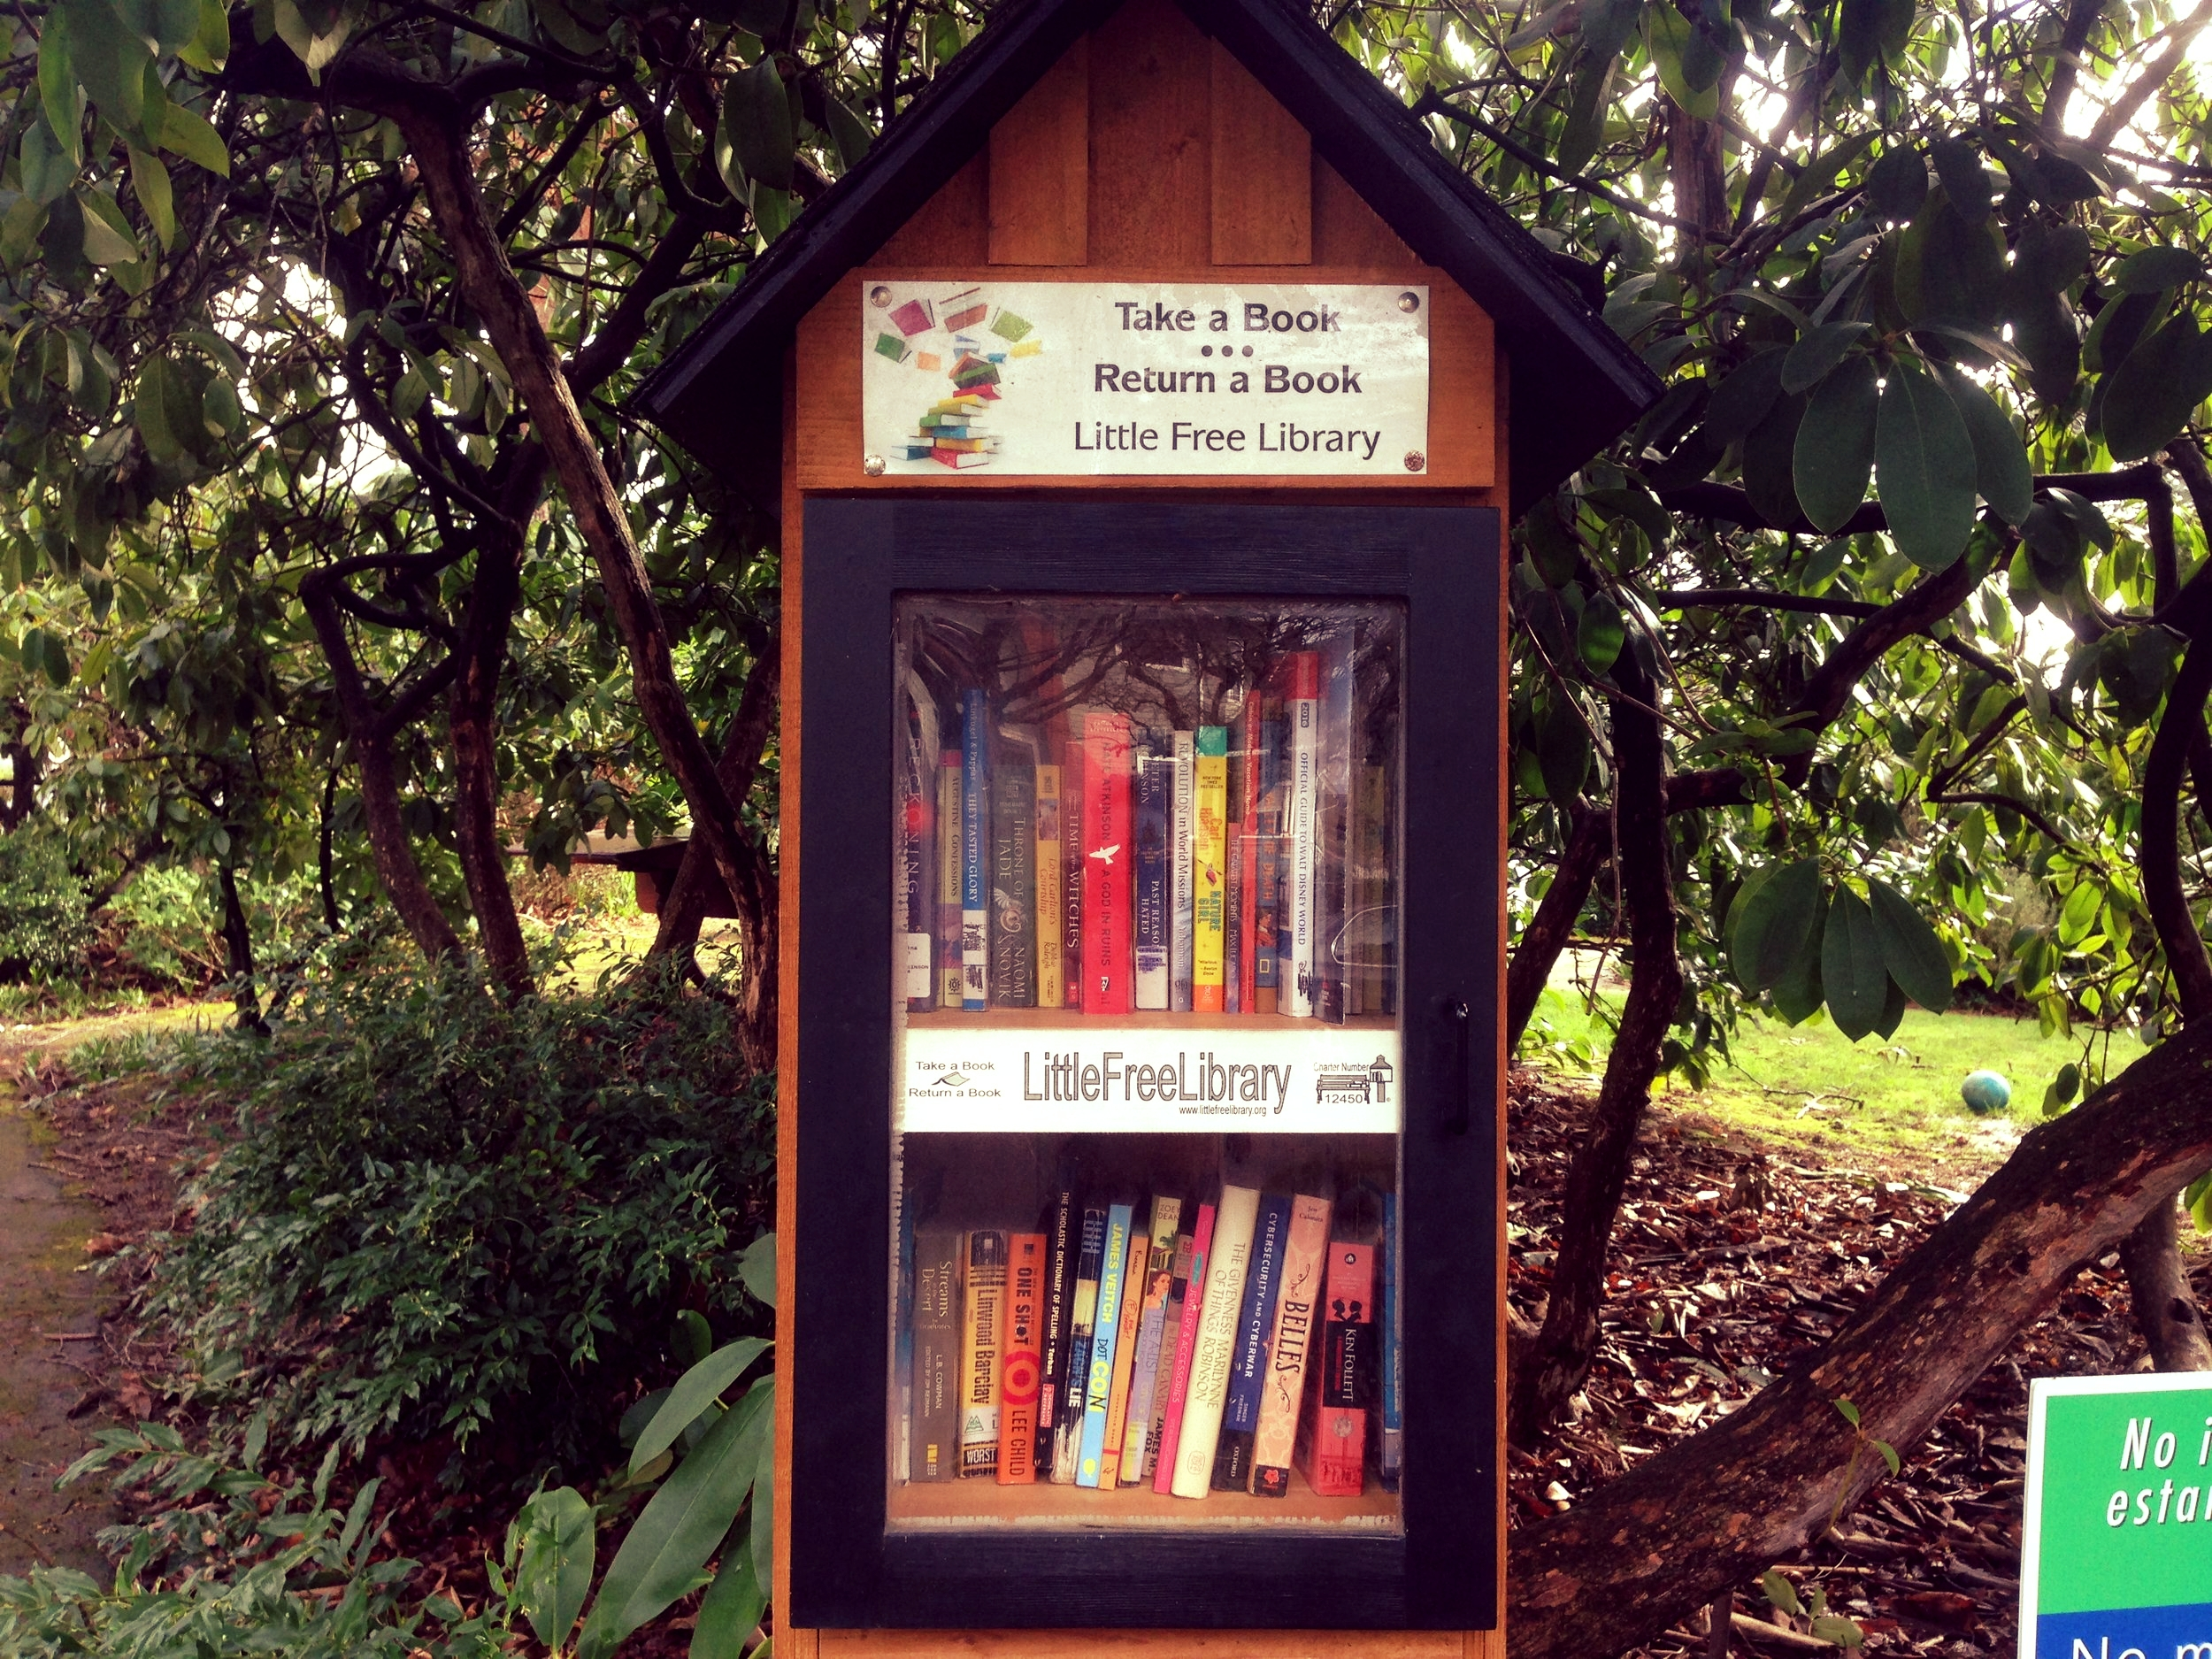 Little Free Library - Pick up a book or leave a book to share at our Little Free Library Kiosk.